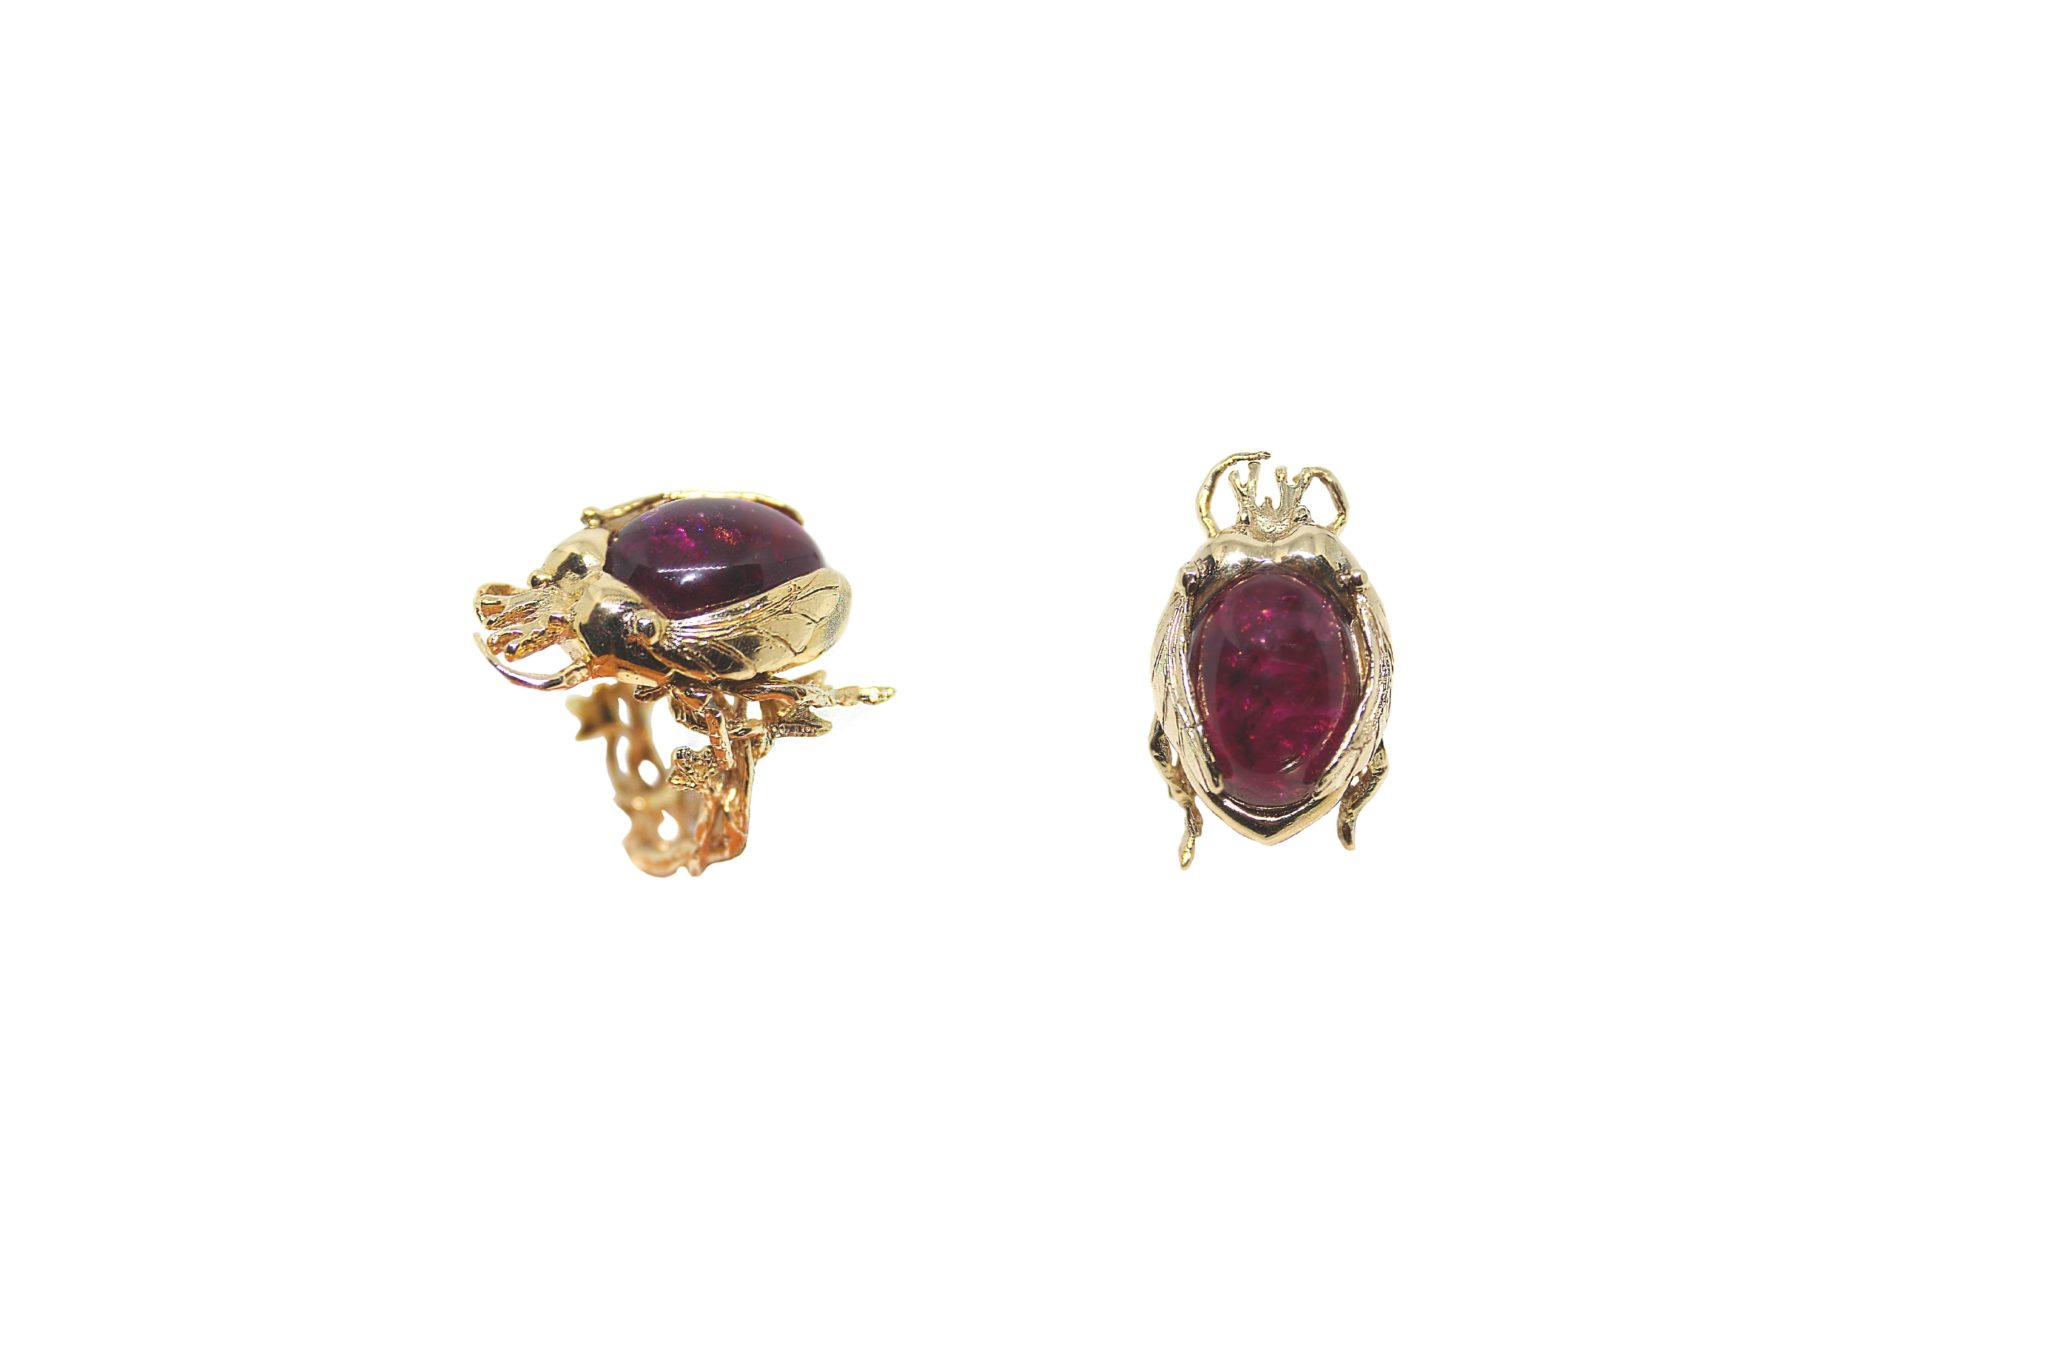 Gold scarab ring with red tourmaline cabochon